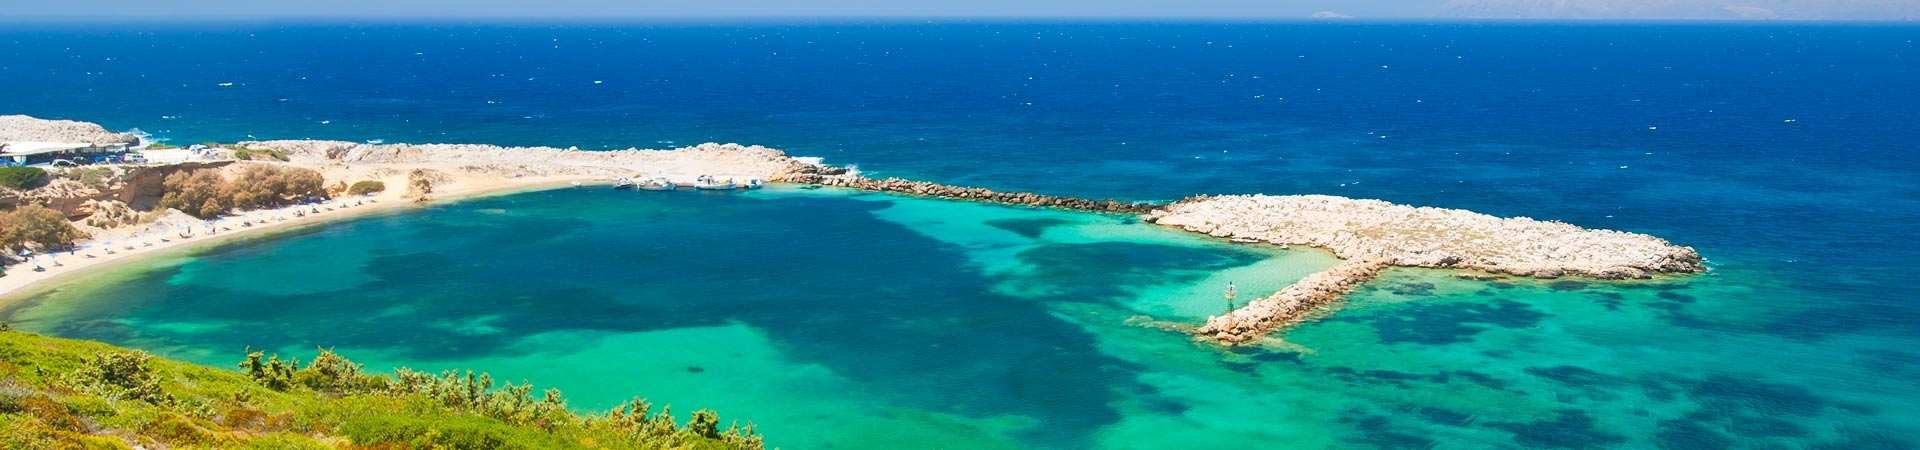 Yacht rental Kos | Kos Island, Greece